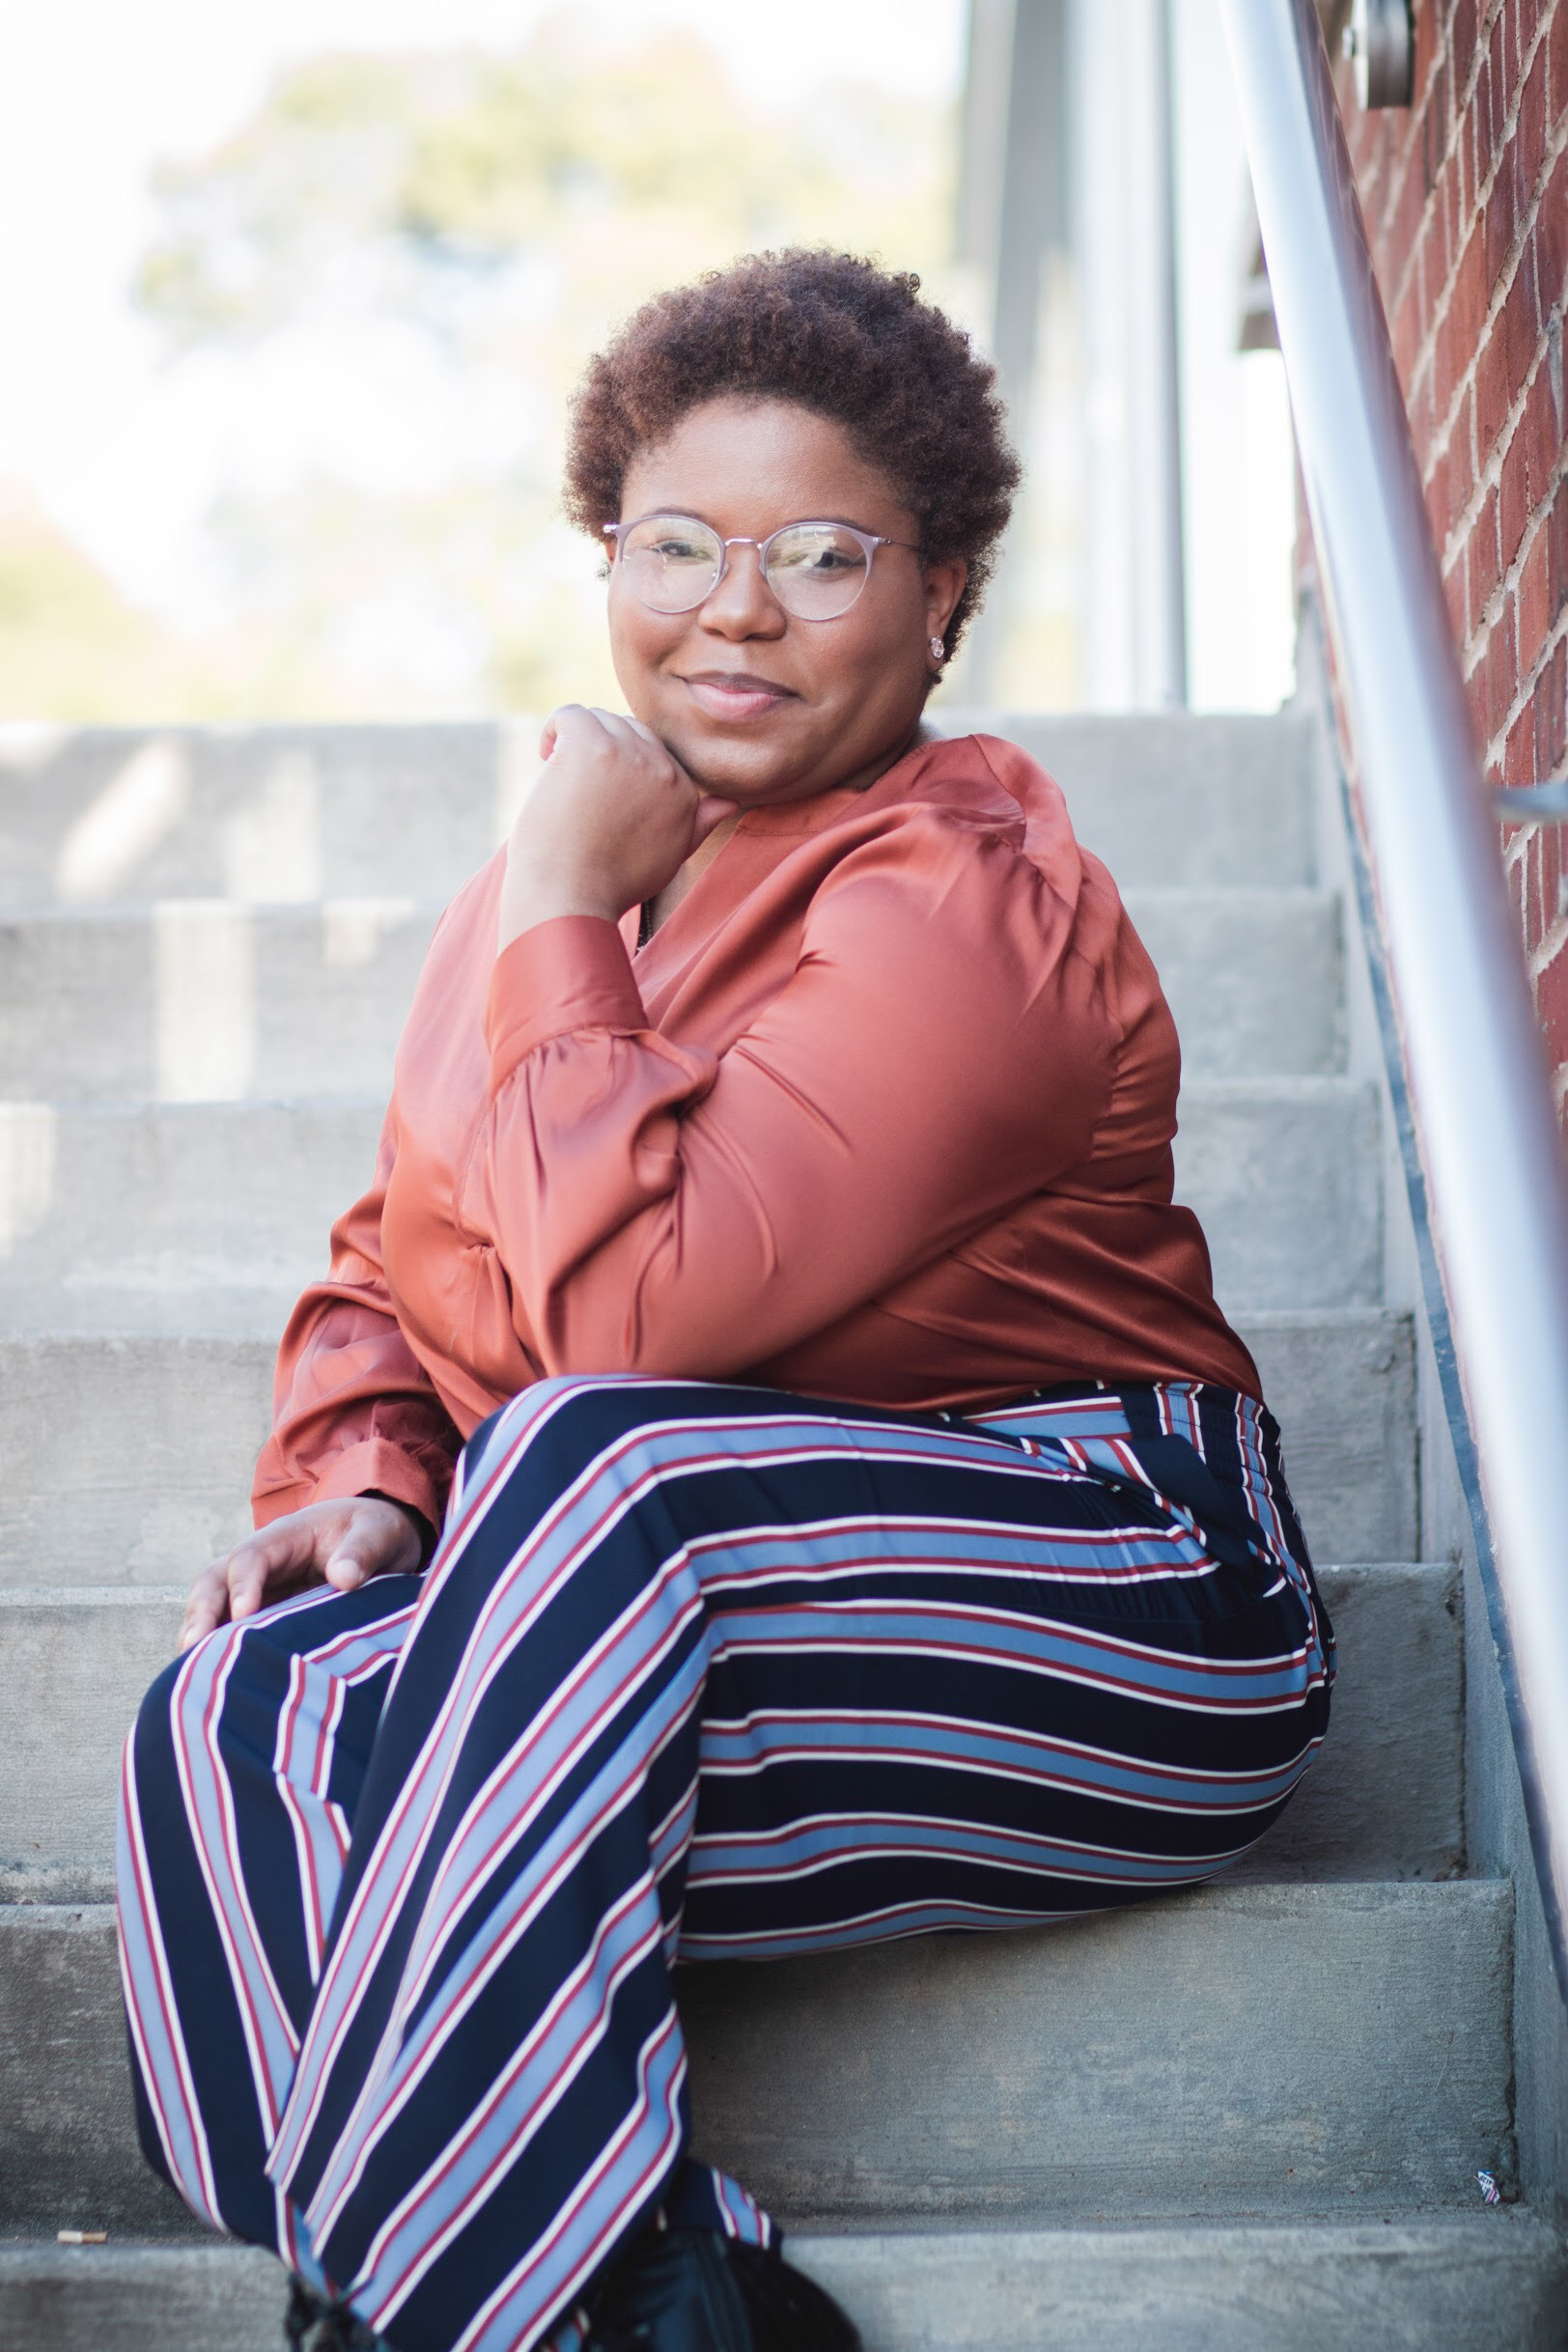 Hi, my name is Joy Melody. I am a graduate student at the University of Iowa. I study the sociology of education and health communication. I am interested in how student-athletes communicate their mental distress.  Sometimes I write about  pop culture  things too!